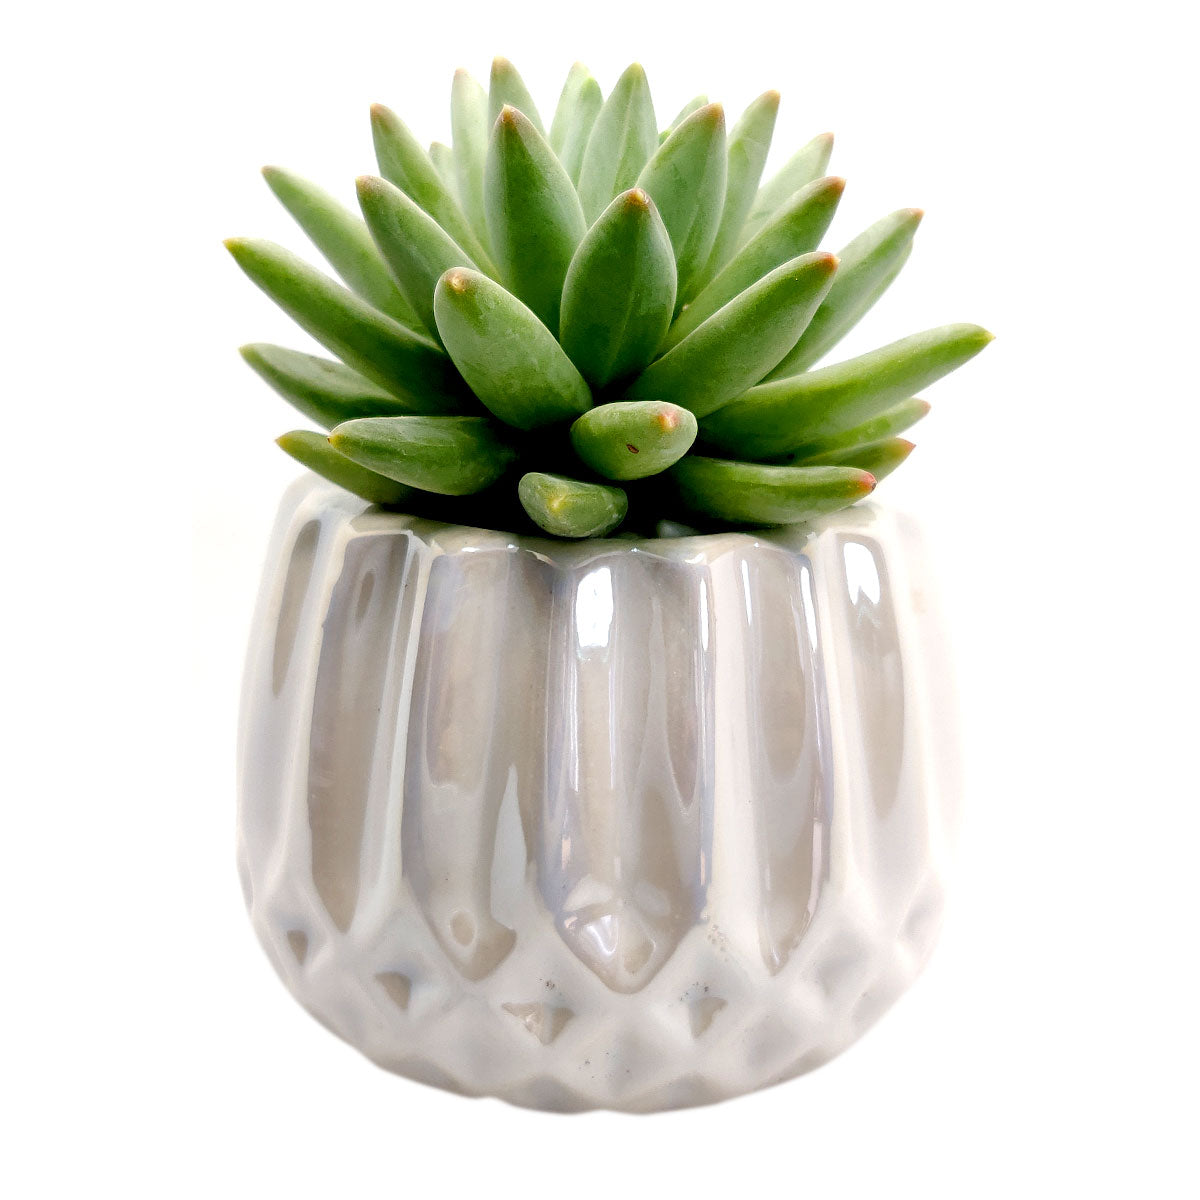 Pot for sale, Mini pot for succulent, Succulent pot decor ideas, White Modern Geometric Pot, Flower pot for sale, glass pots for planting, succulent gift for holiday